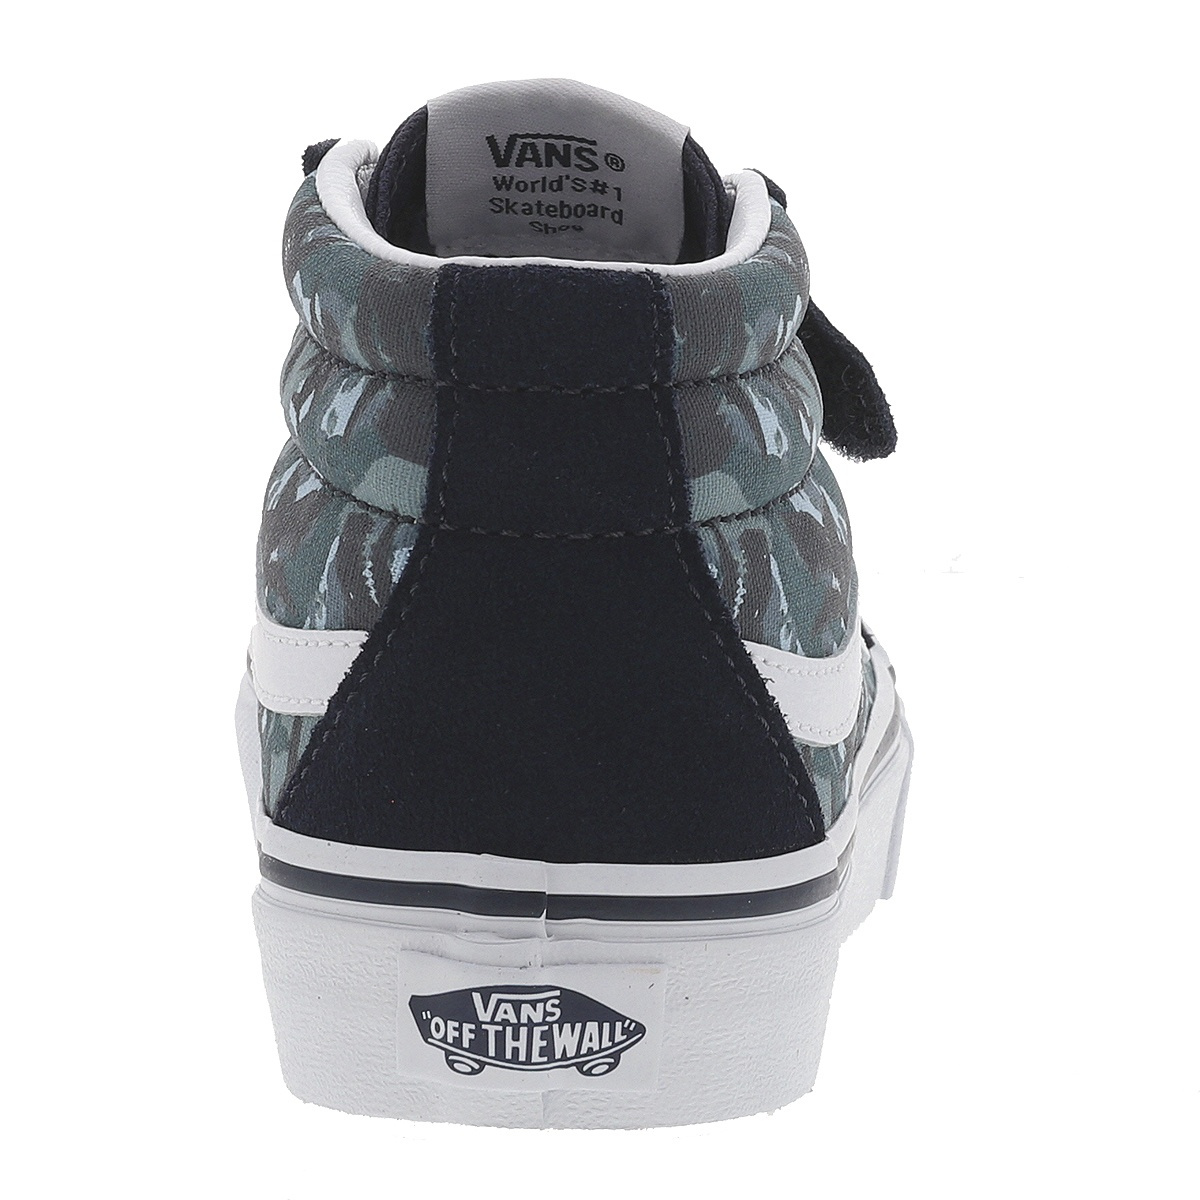 vans chaussures montantes